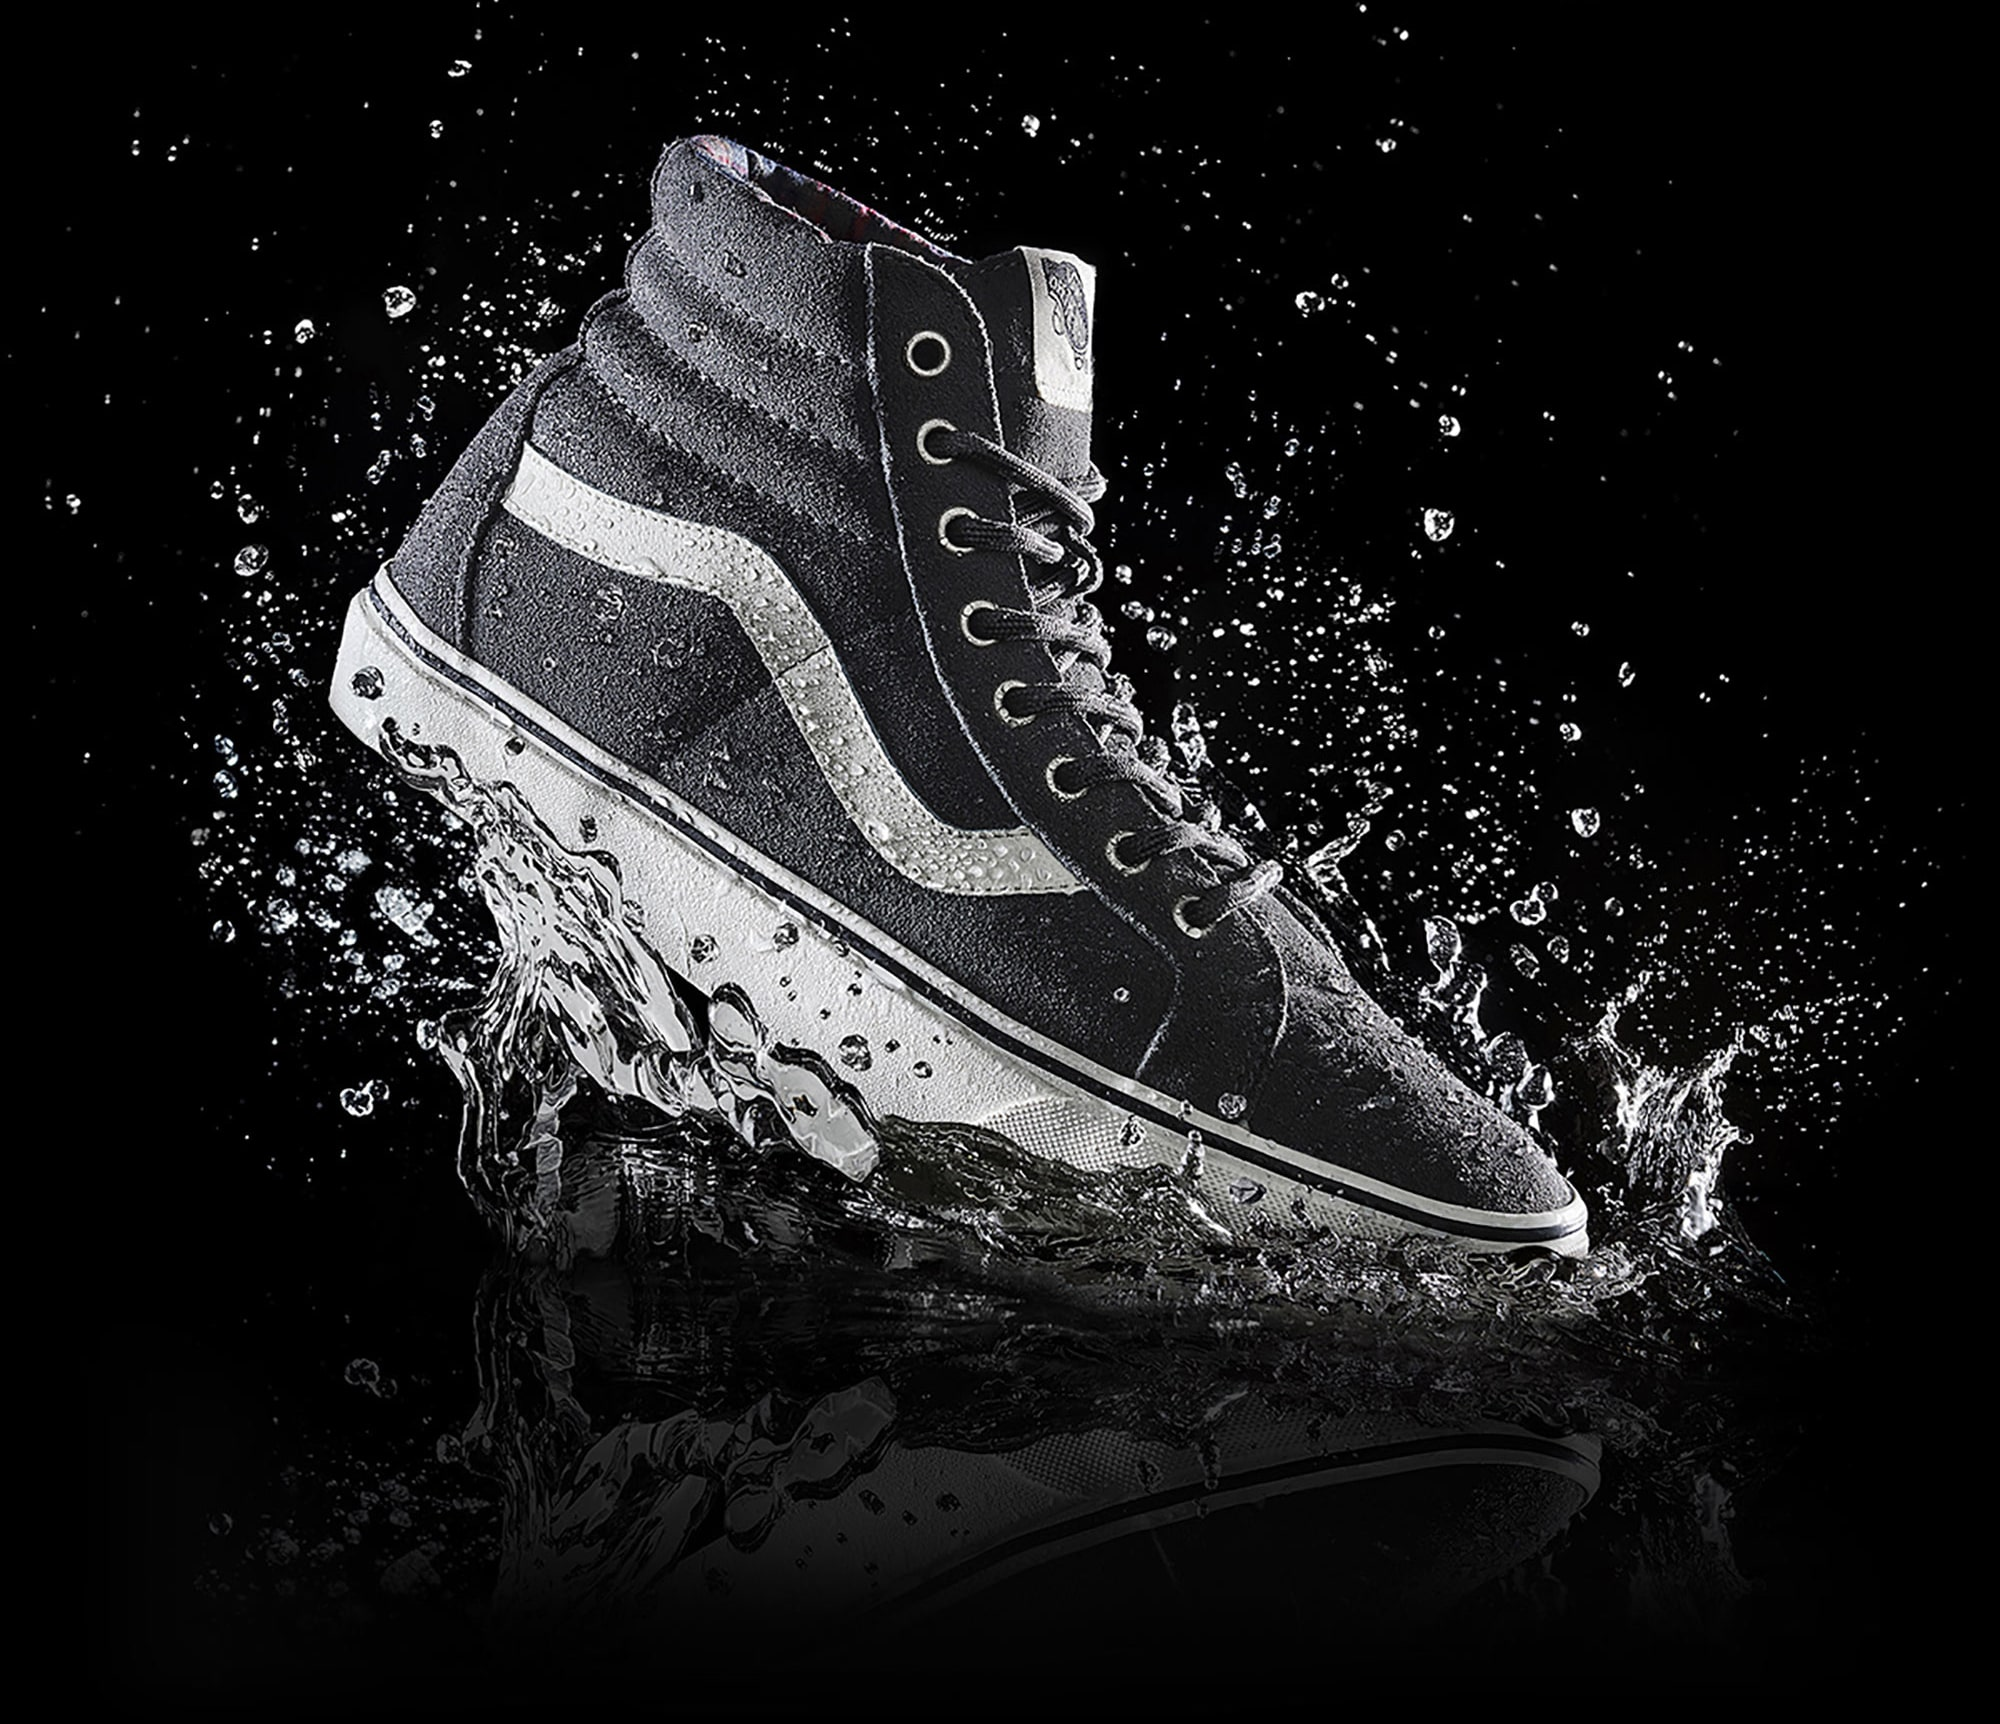 Balck Shoes Water Still Life Shot for Vans by Fotografando